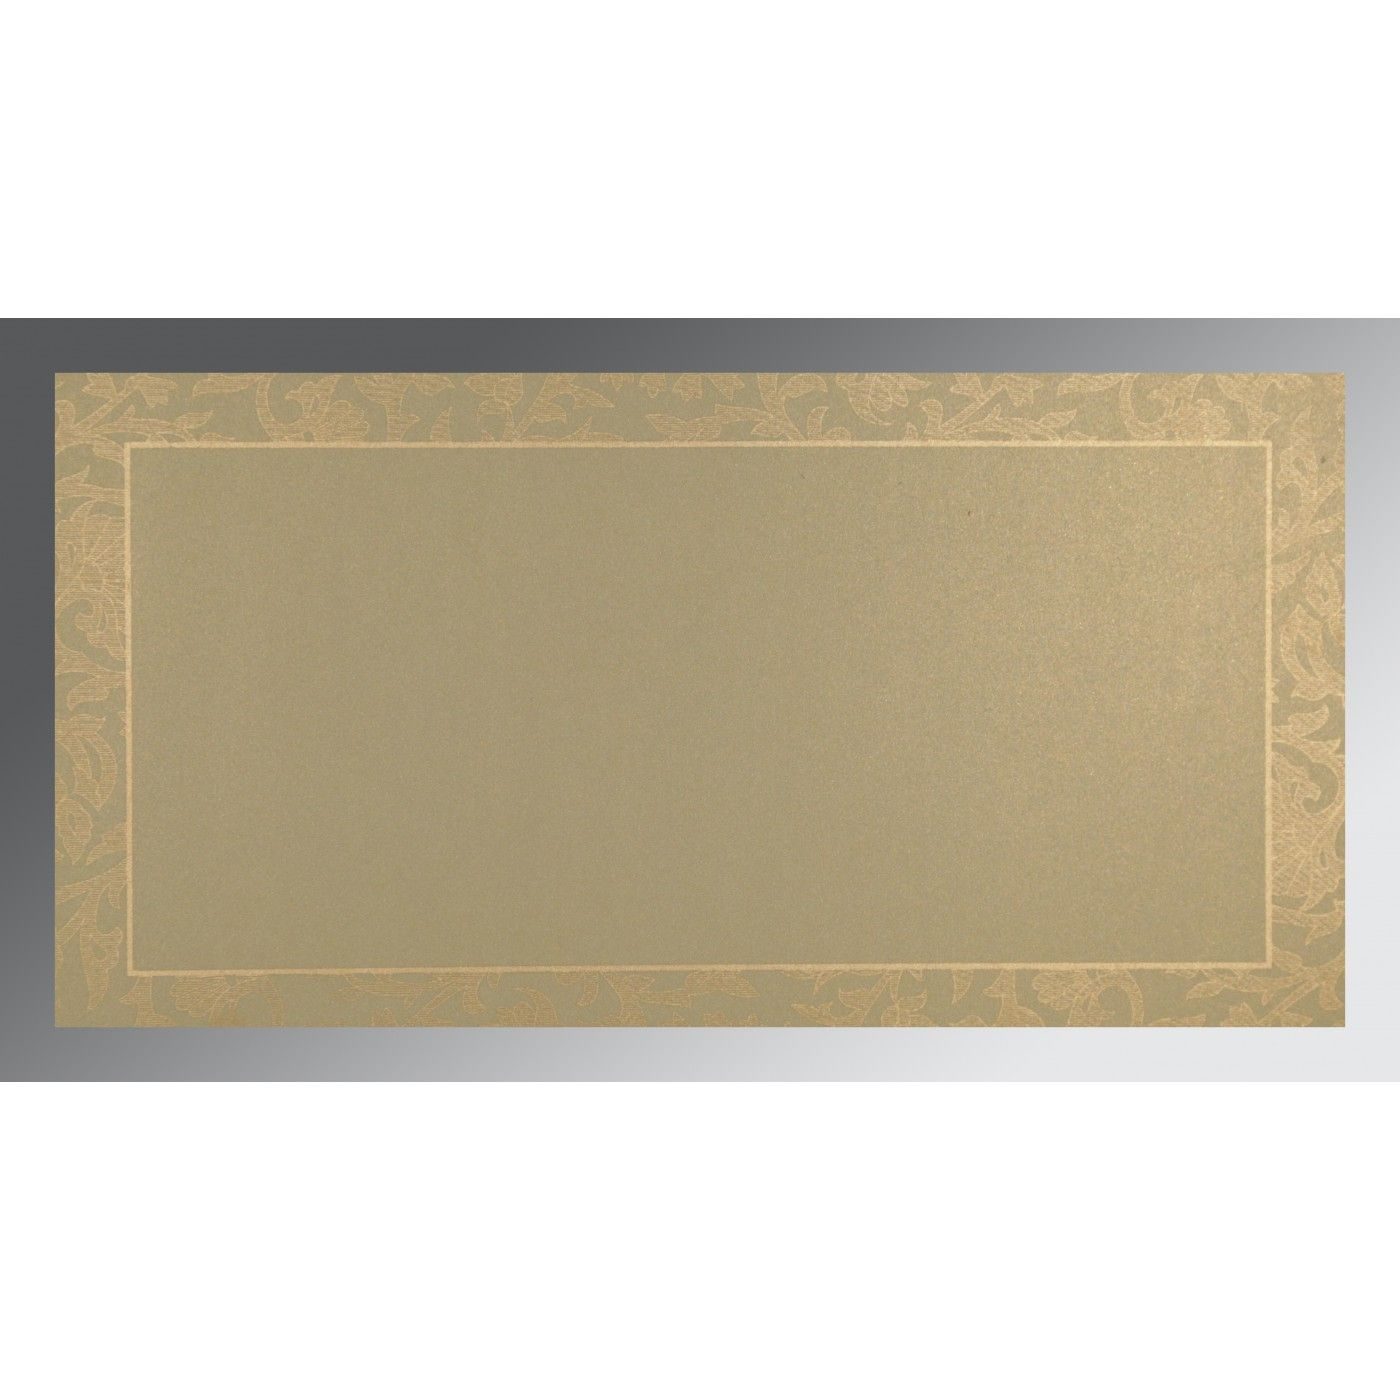 BROWN CREAM SHIMMERY EMBOSSED WEDDING INVITATION : CSO-1426 - IndianWeddingCards